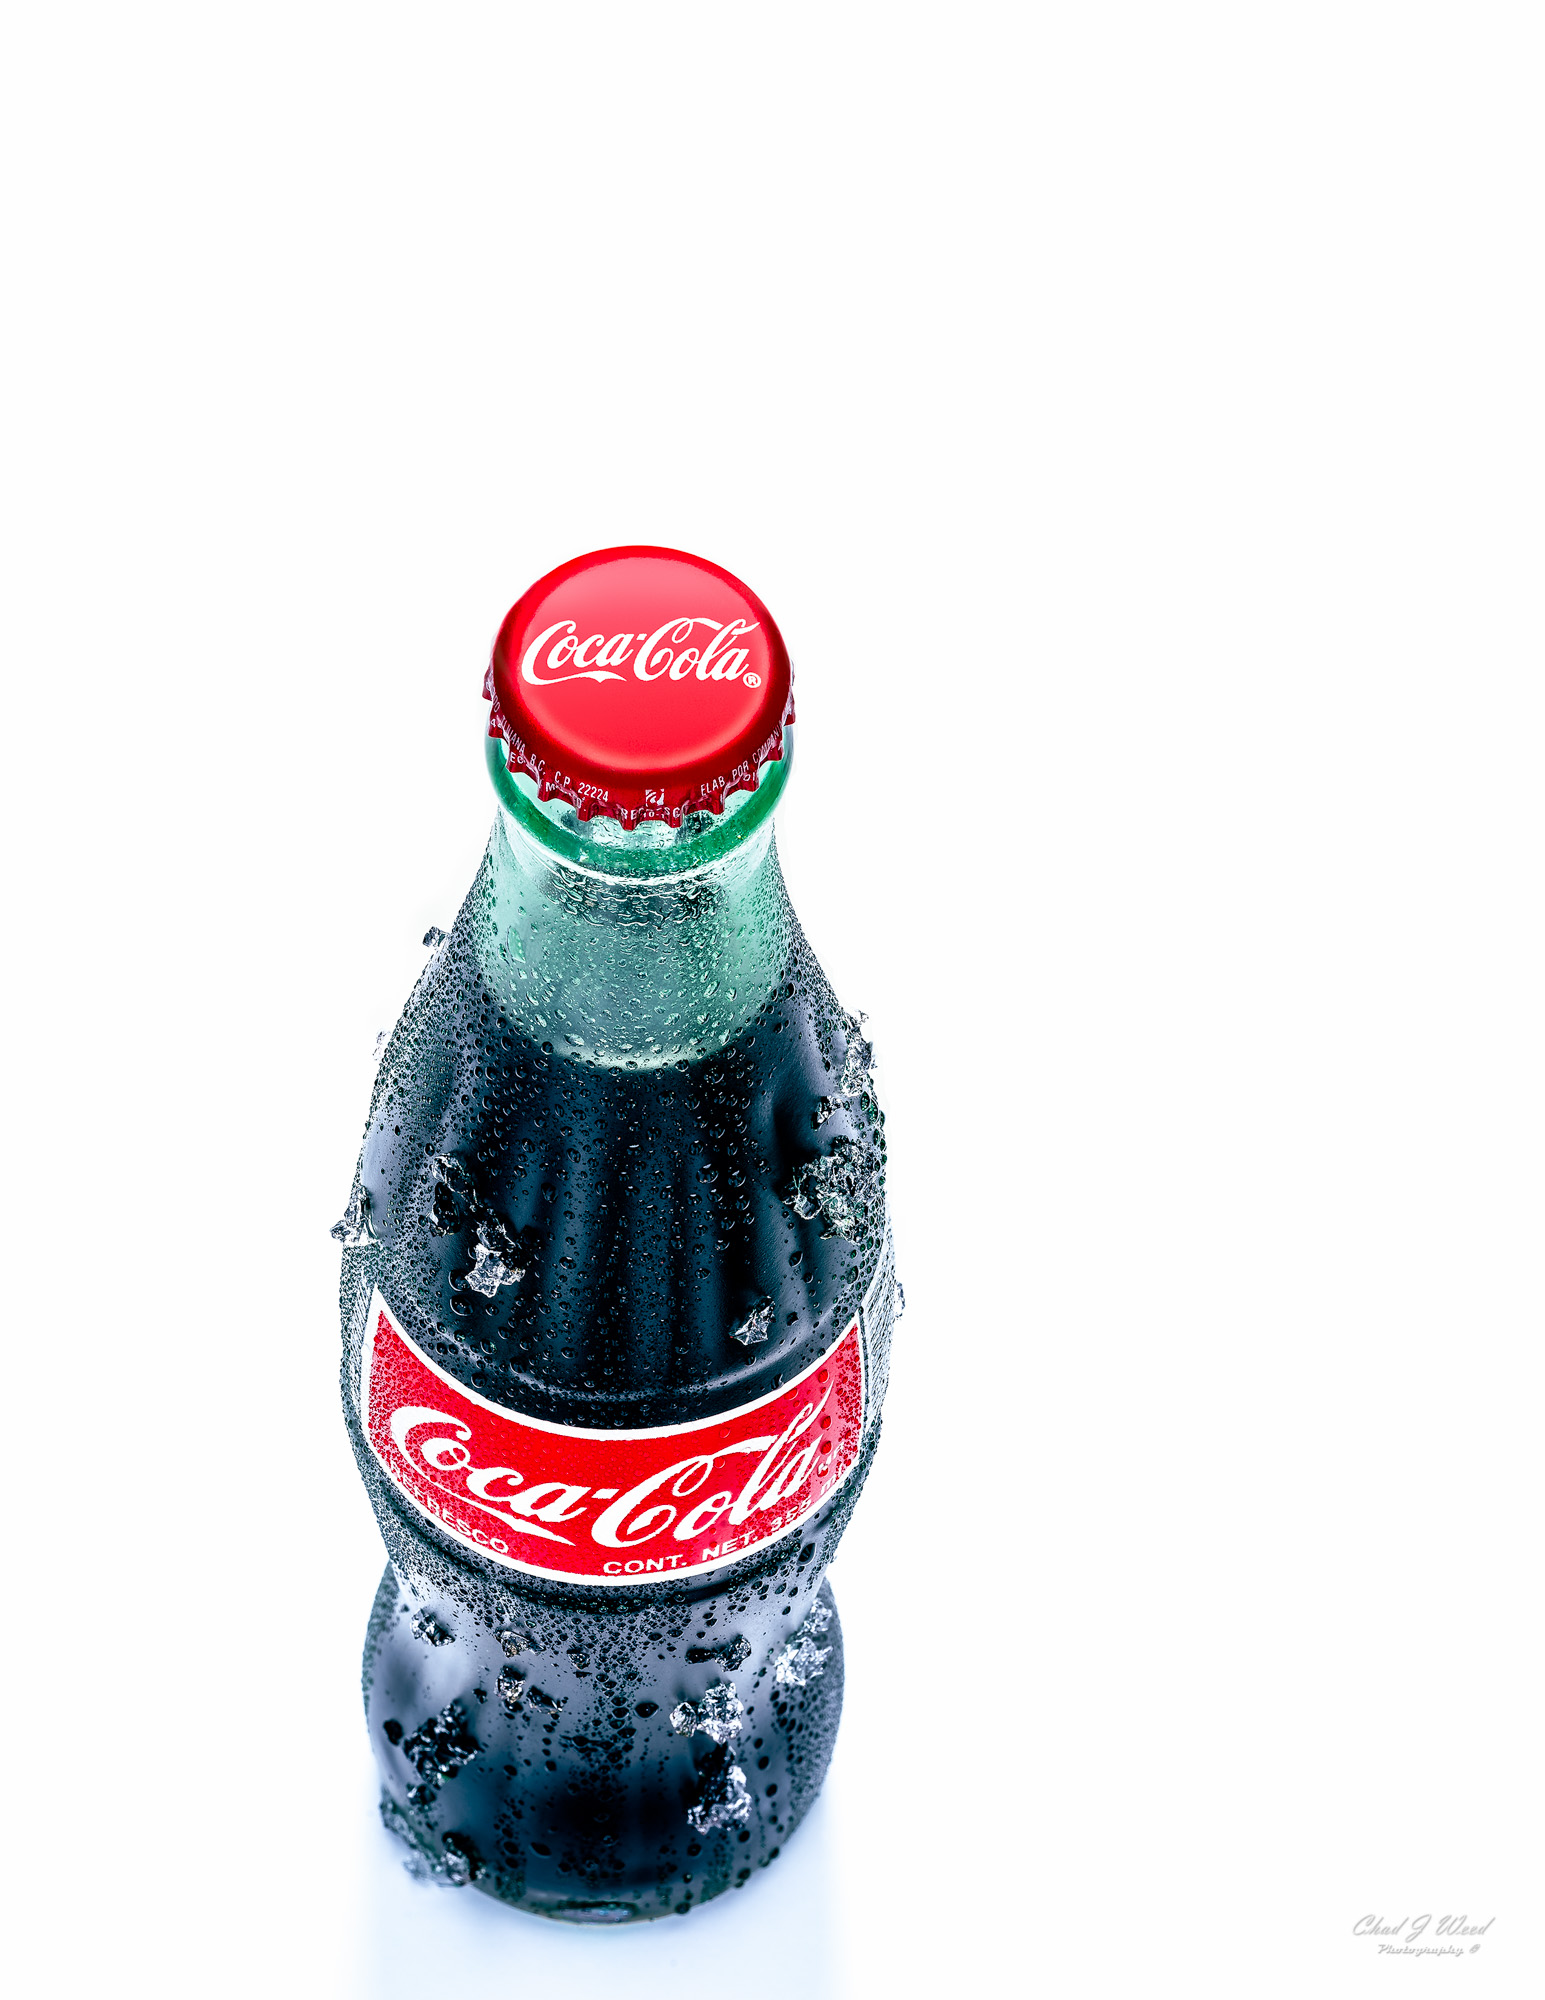 Coke Bottle by Arizona Commercial Beverage Photographer Chad J Weed